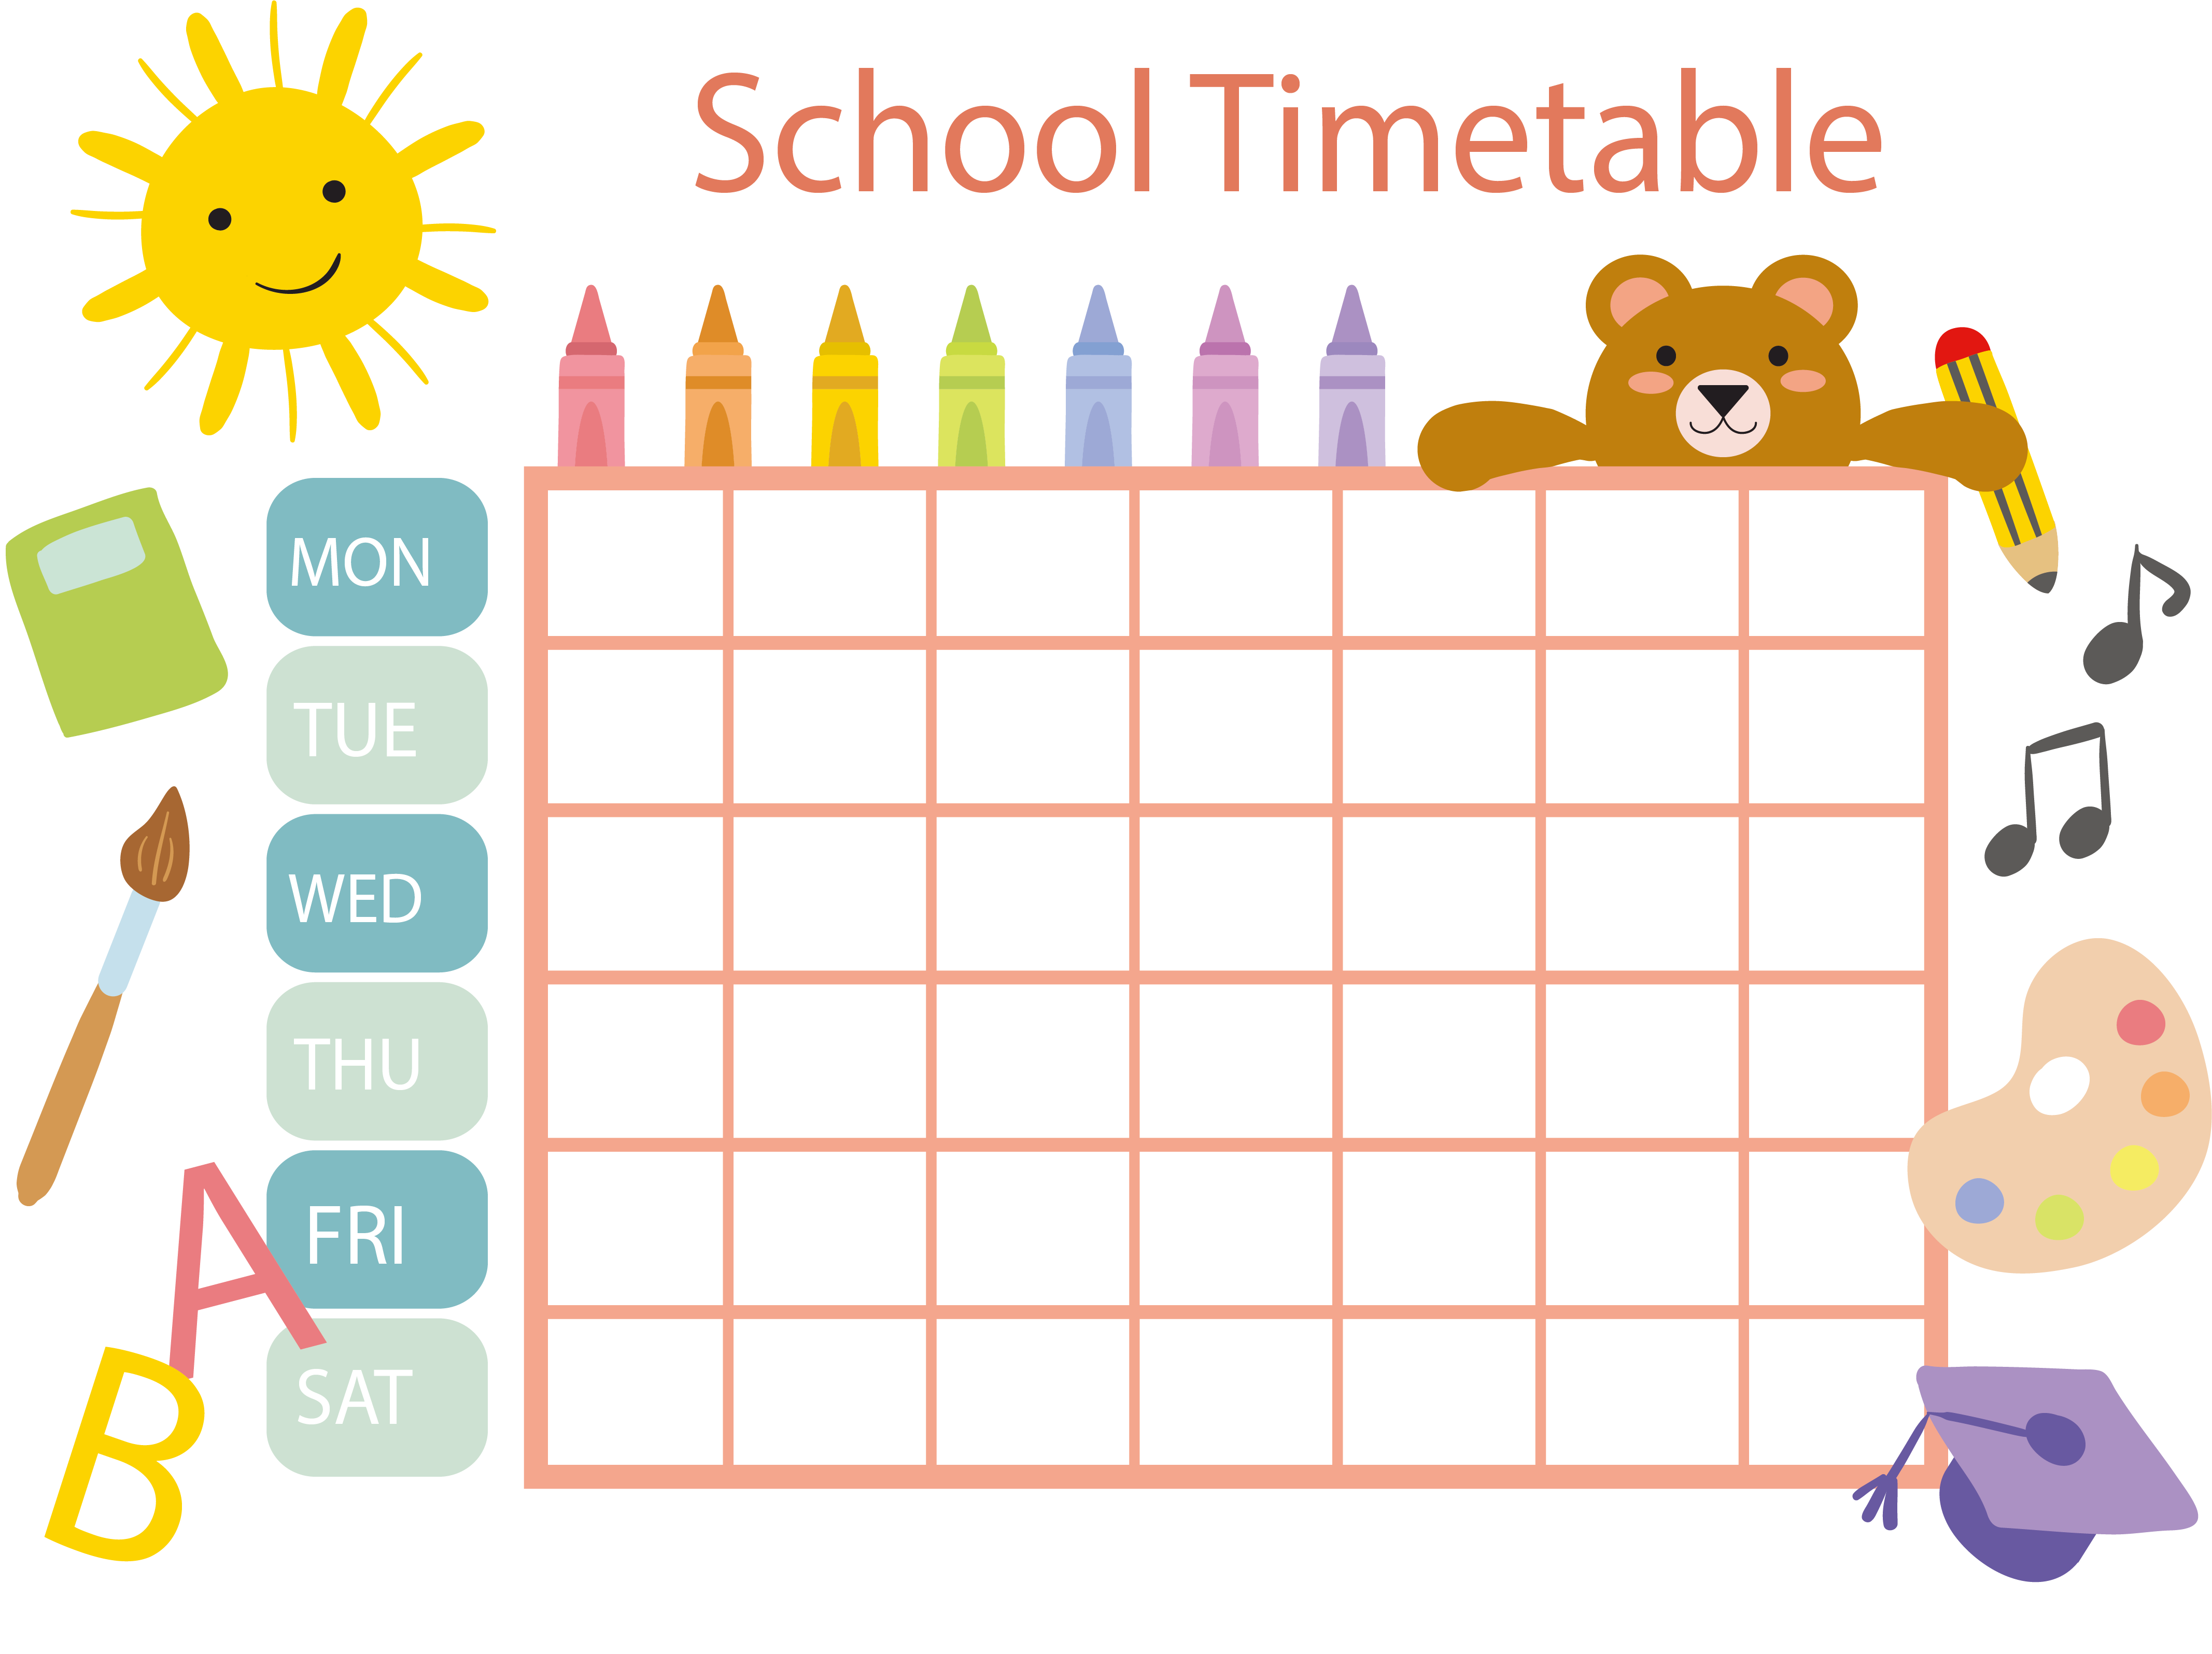 Facebook clipart template. School timetable schedule clip